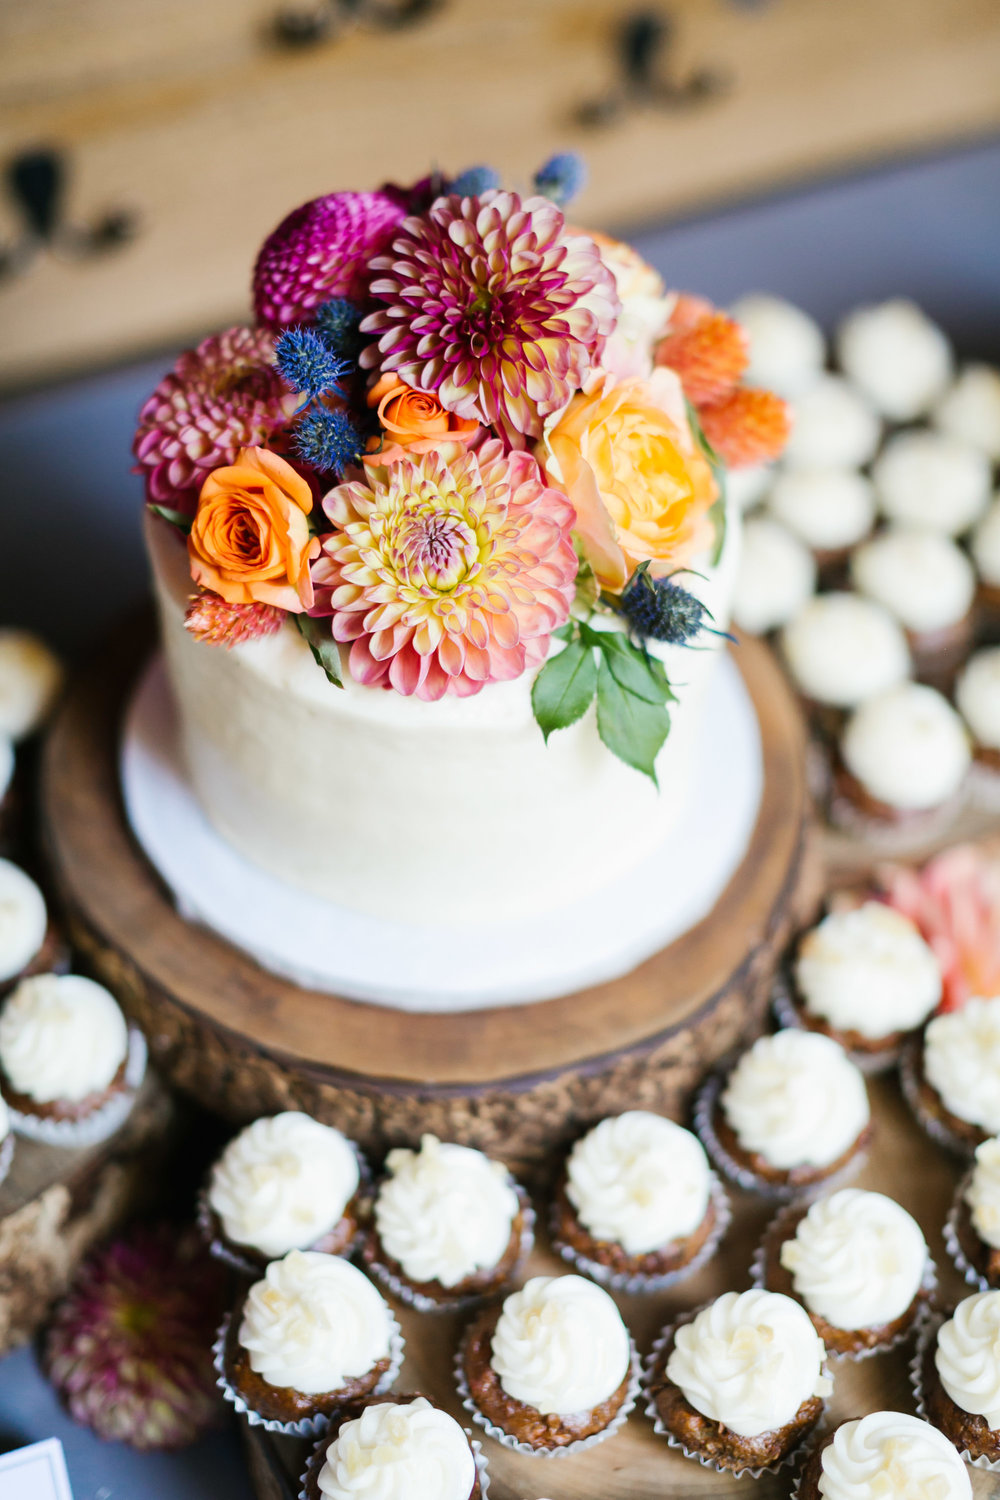 Small wedding cake topped with colorful dahlias and surrounded by cupcakes